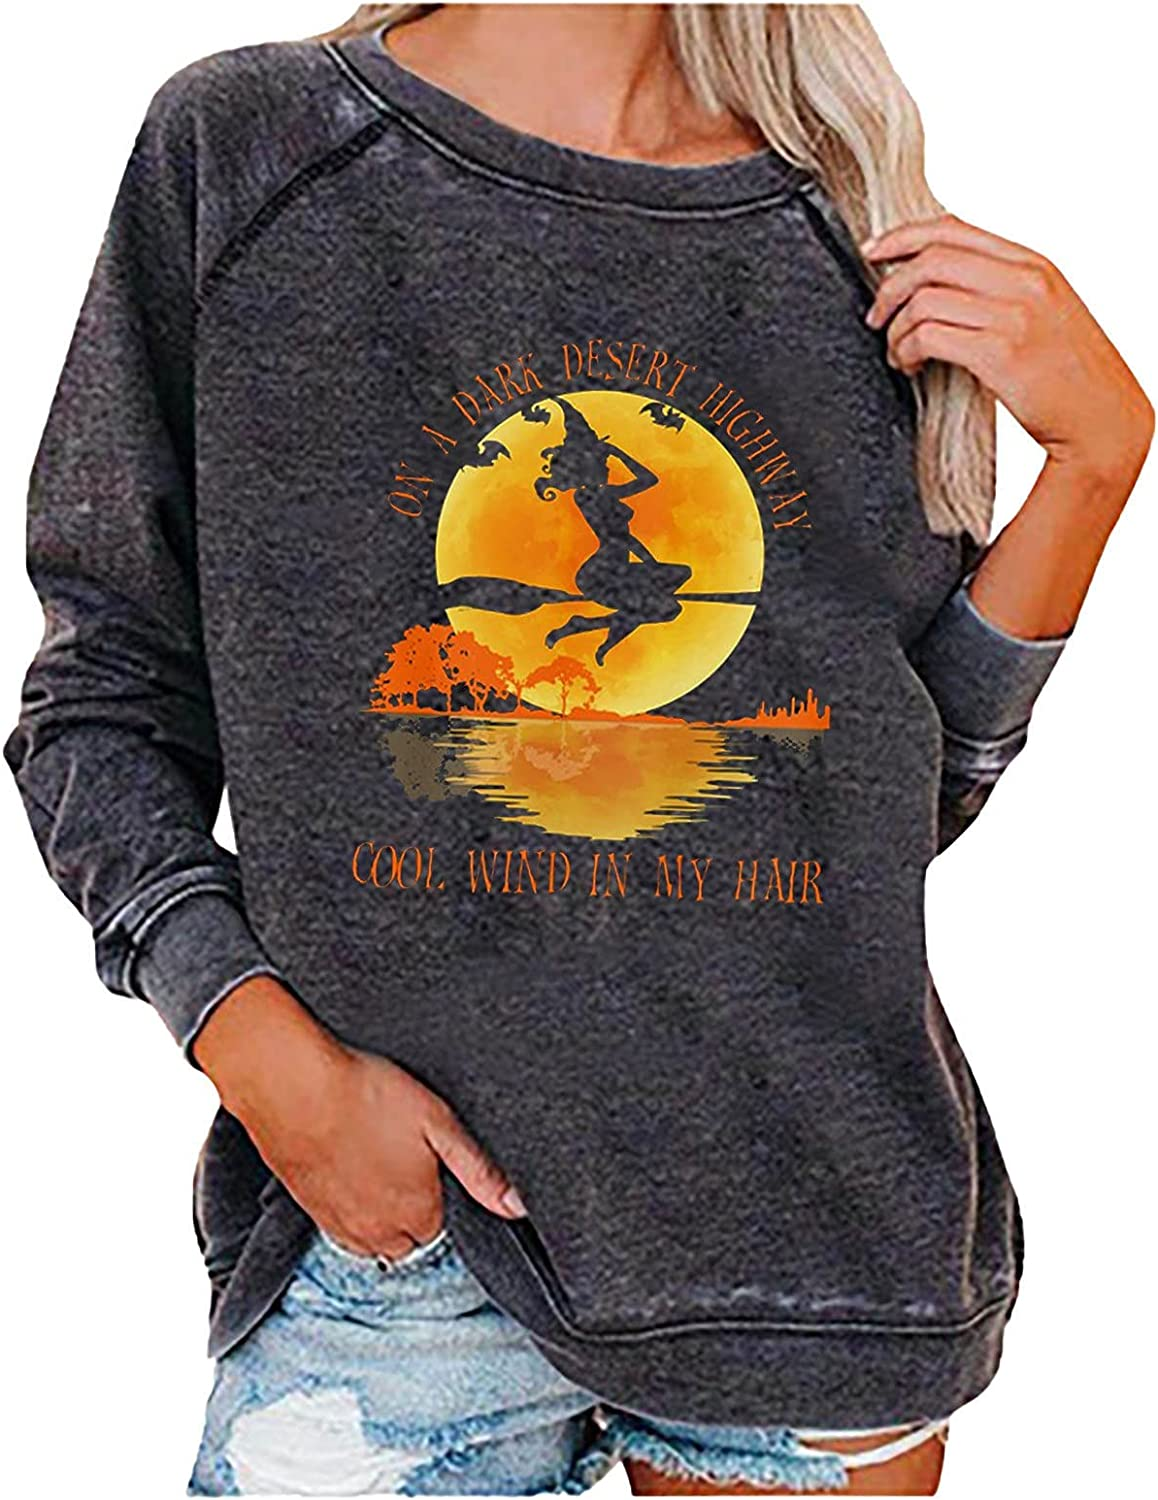 Winter Coats for Women Plus Sale item Size Chicago Mall Graphic Long Shirts Tops Sleeve